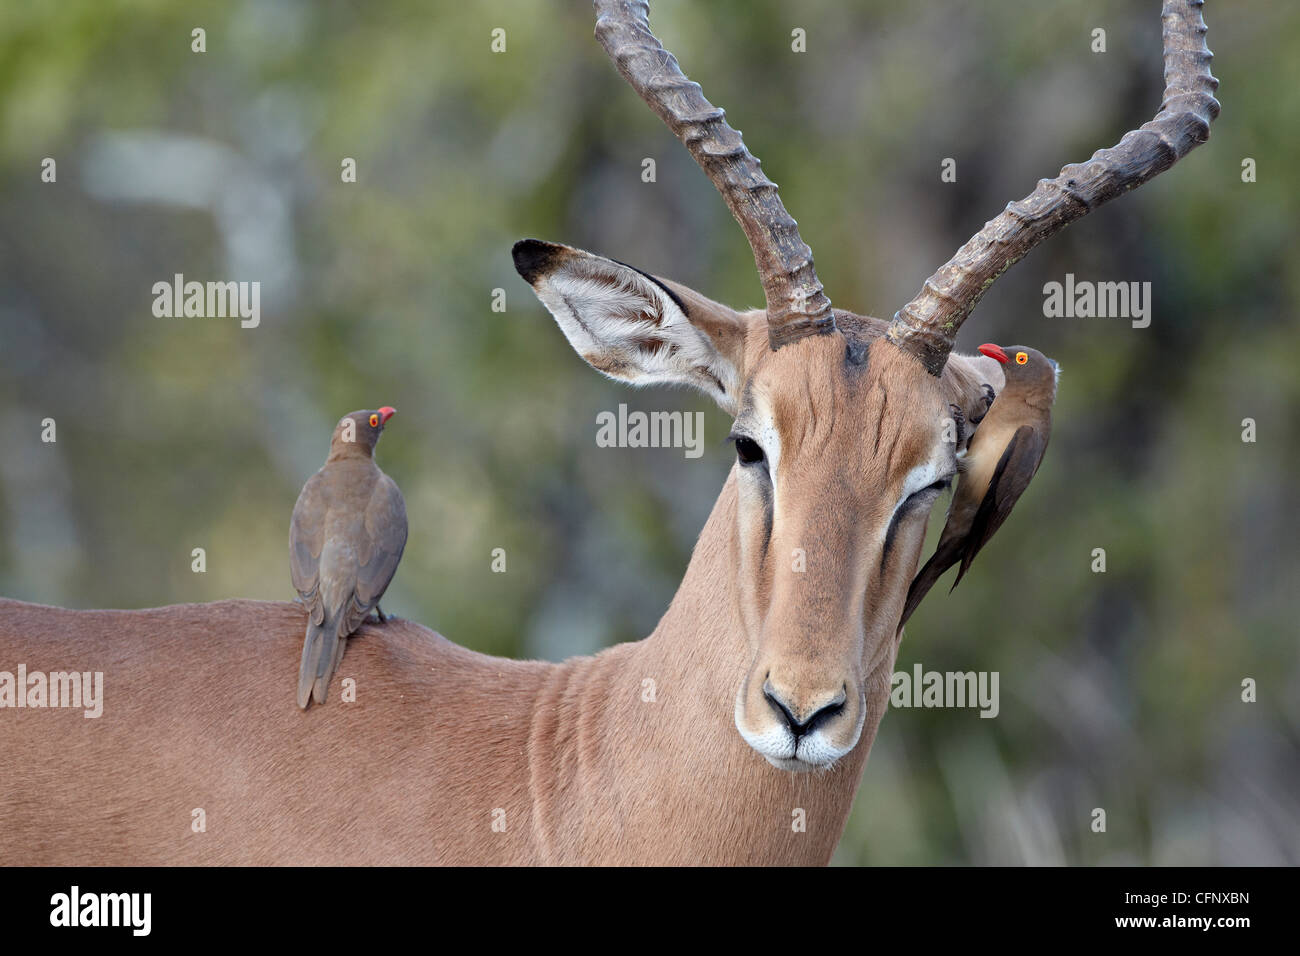 Male impala (Aepyceros melampus), Kruger National Park, South Africa, Africa Stock Photo